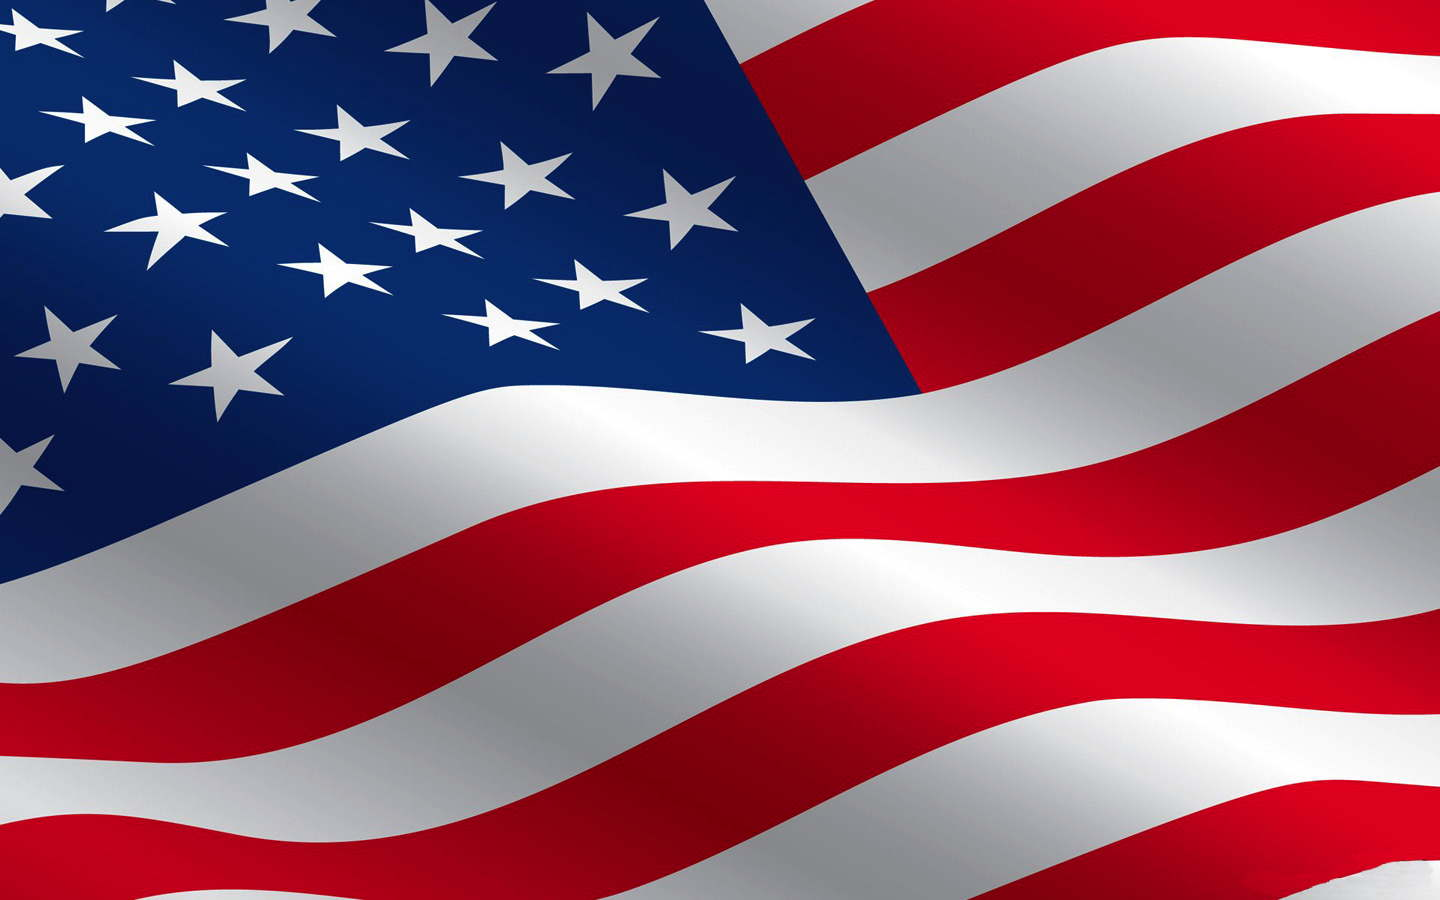 Us Flag 9336 Hd Wallpapers in Travel n World   Imagescicom 1440x900